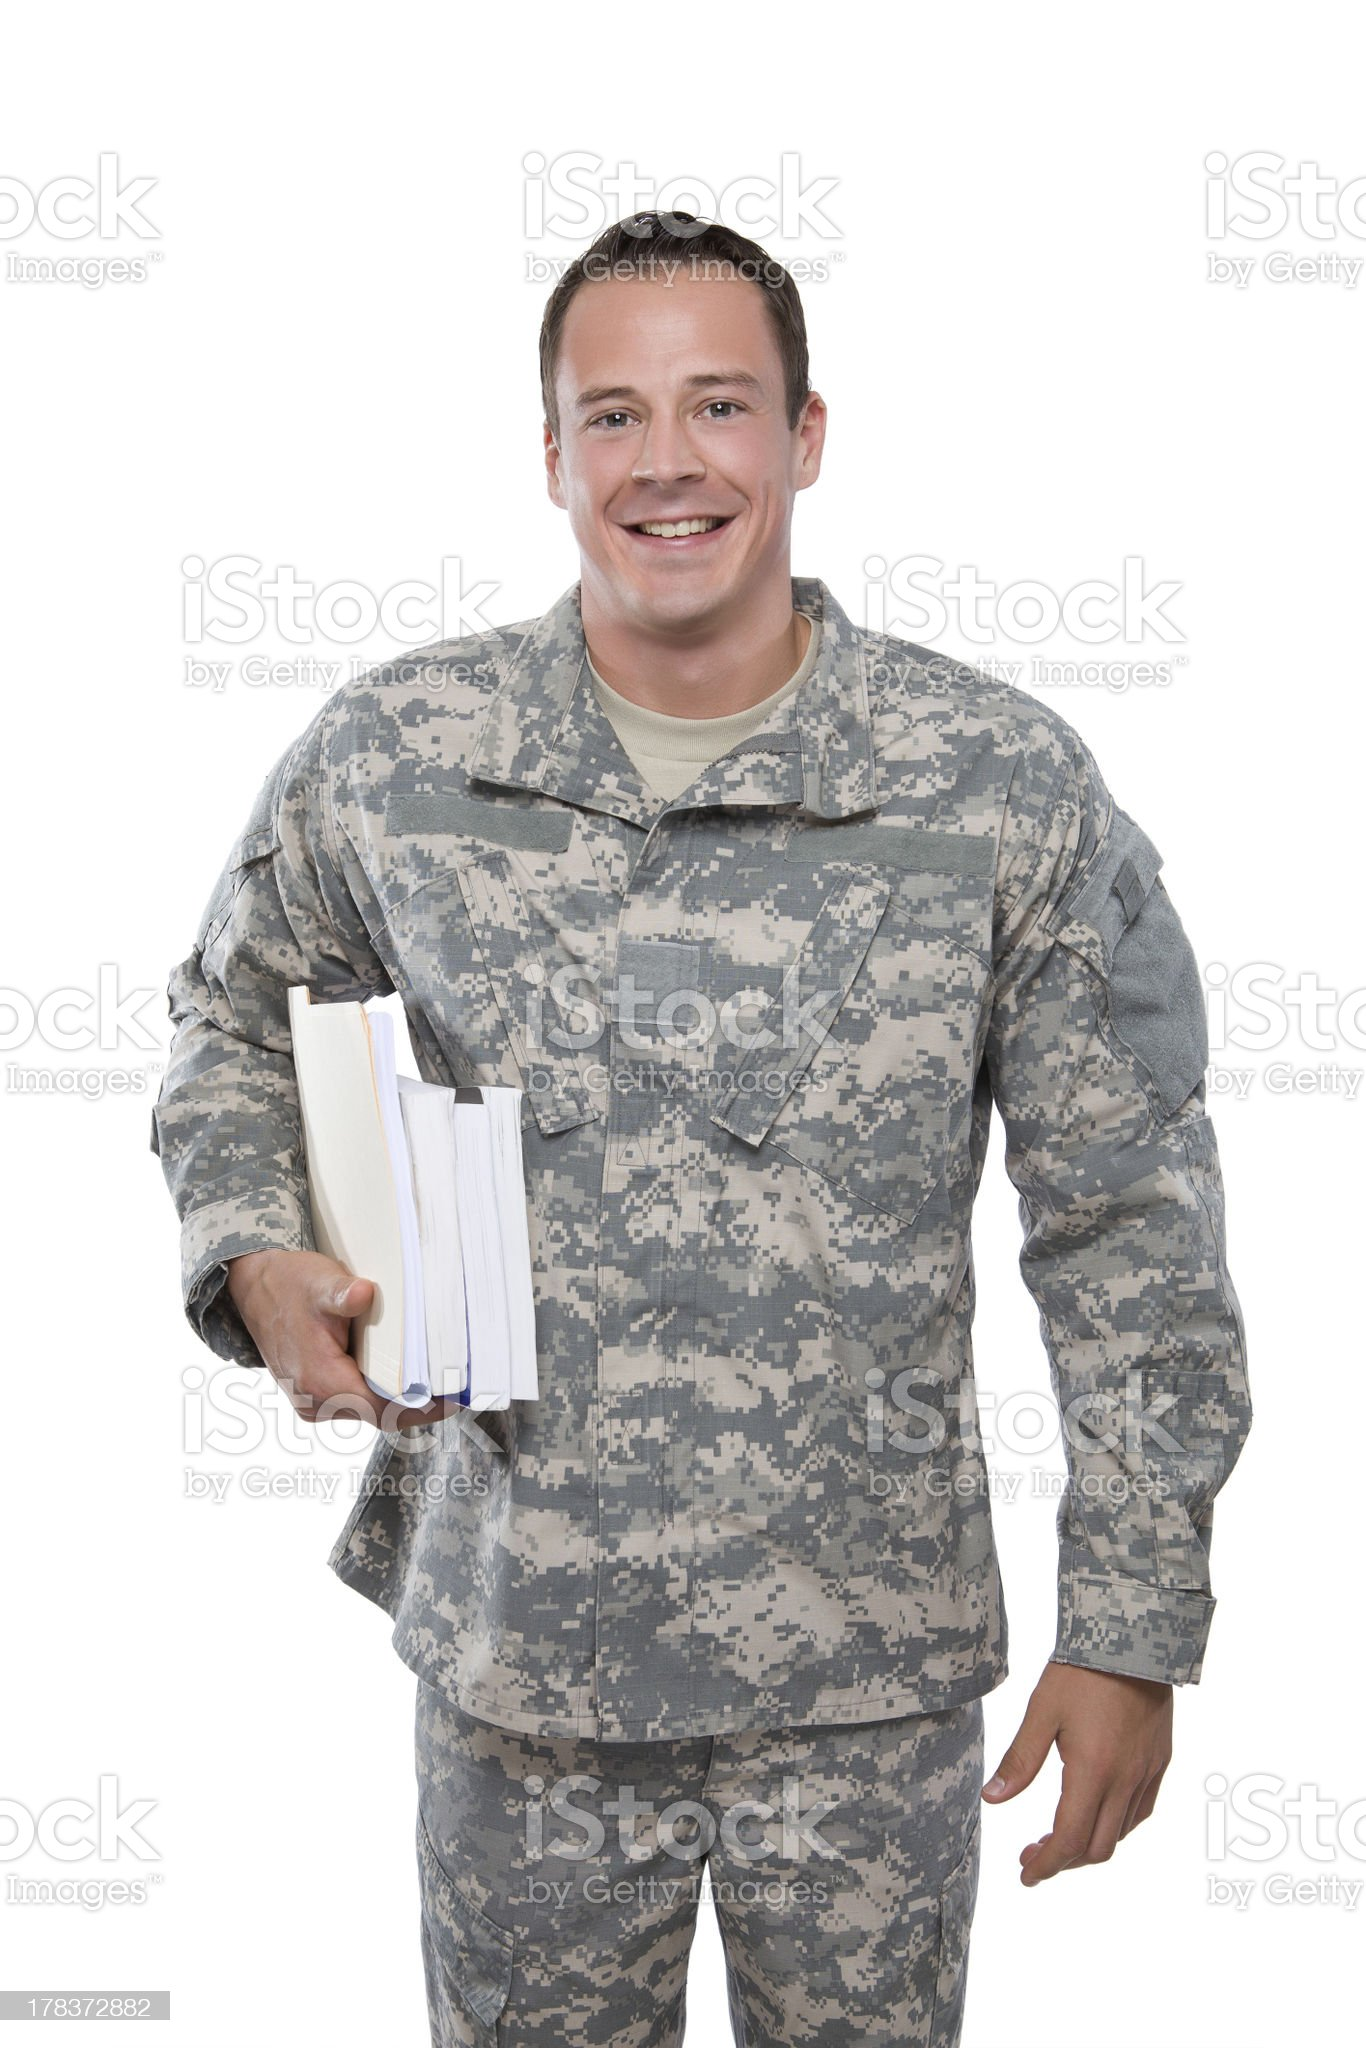 Smiling military man in uniform carrying school books royalty-free stock photo